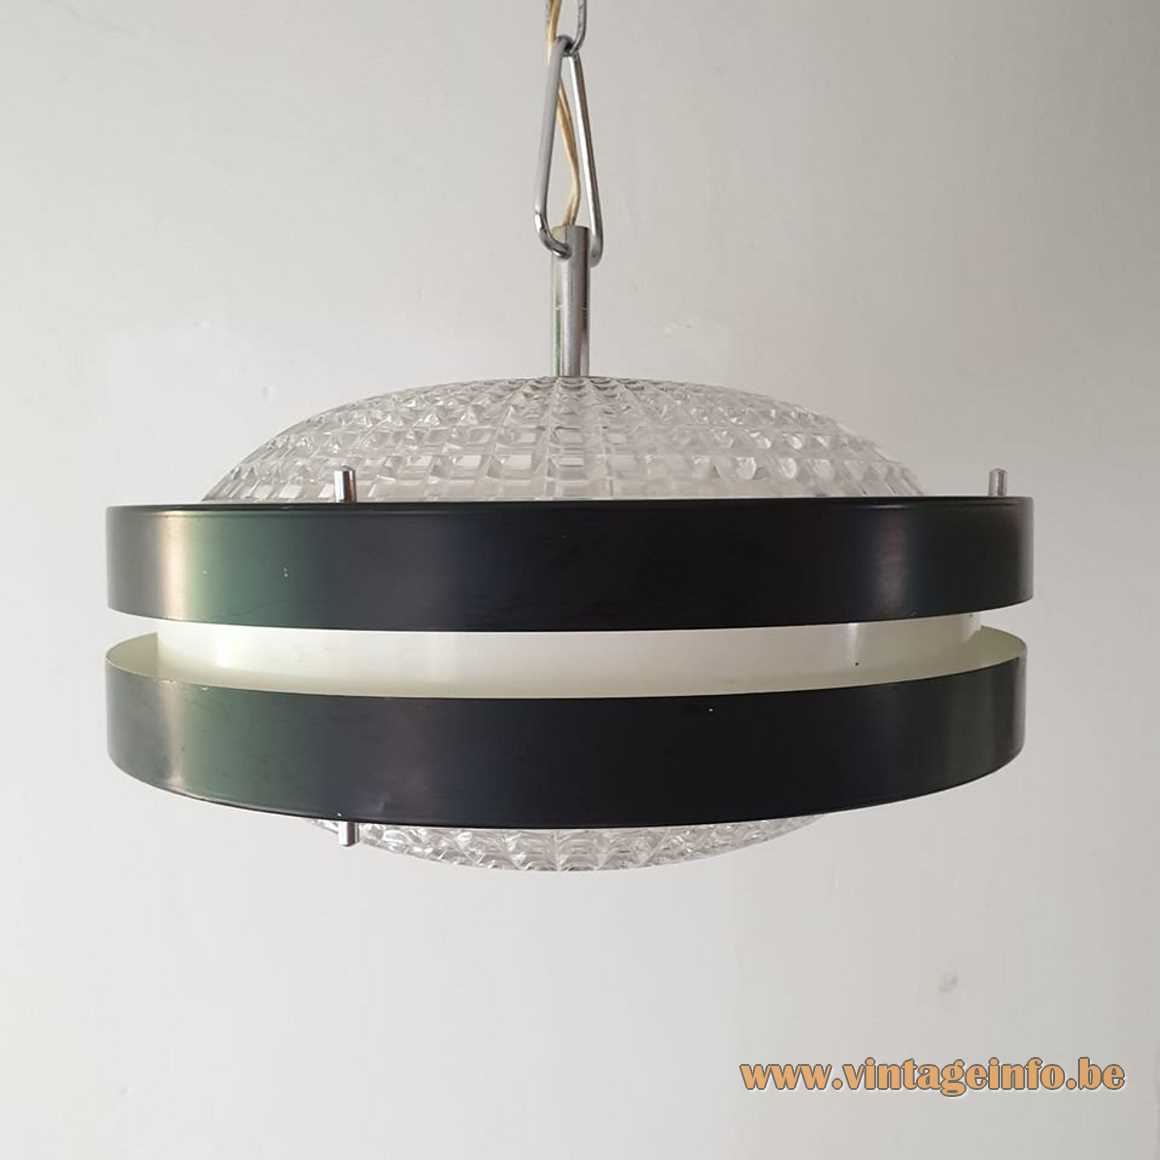 Raak B-1044 pendant lamp - Massive Belgium version/copy 1960s 1970s MCM crystal glass aluminium